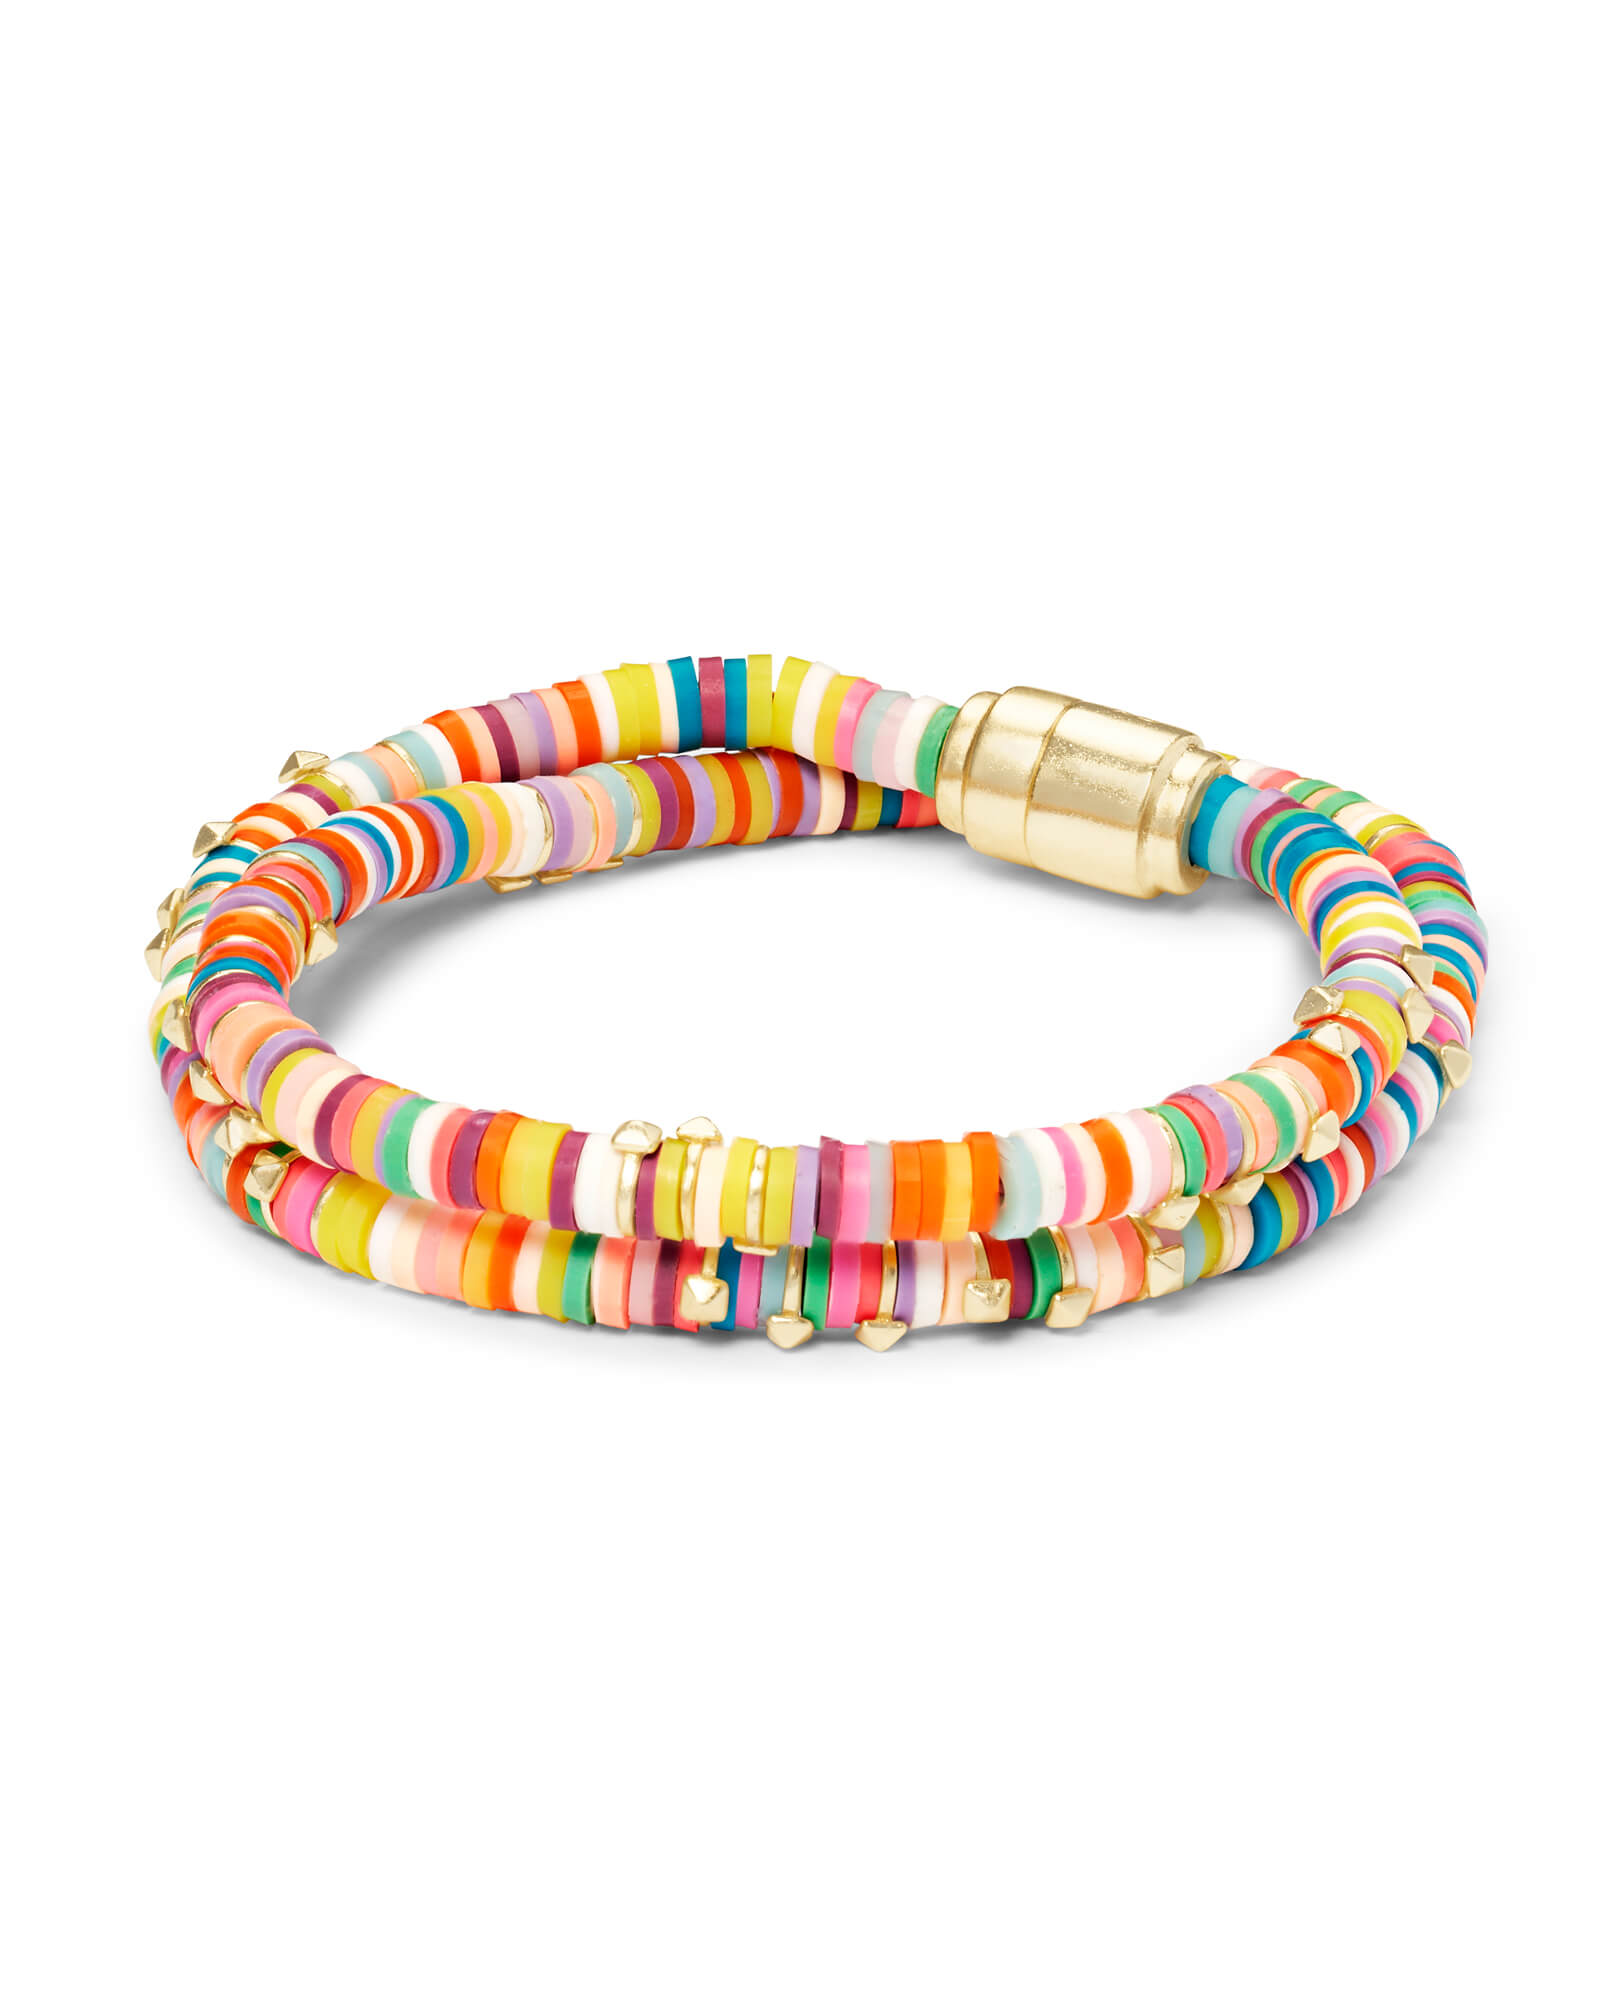 Reece Gold Wrap Bracelet in Bright Mix